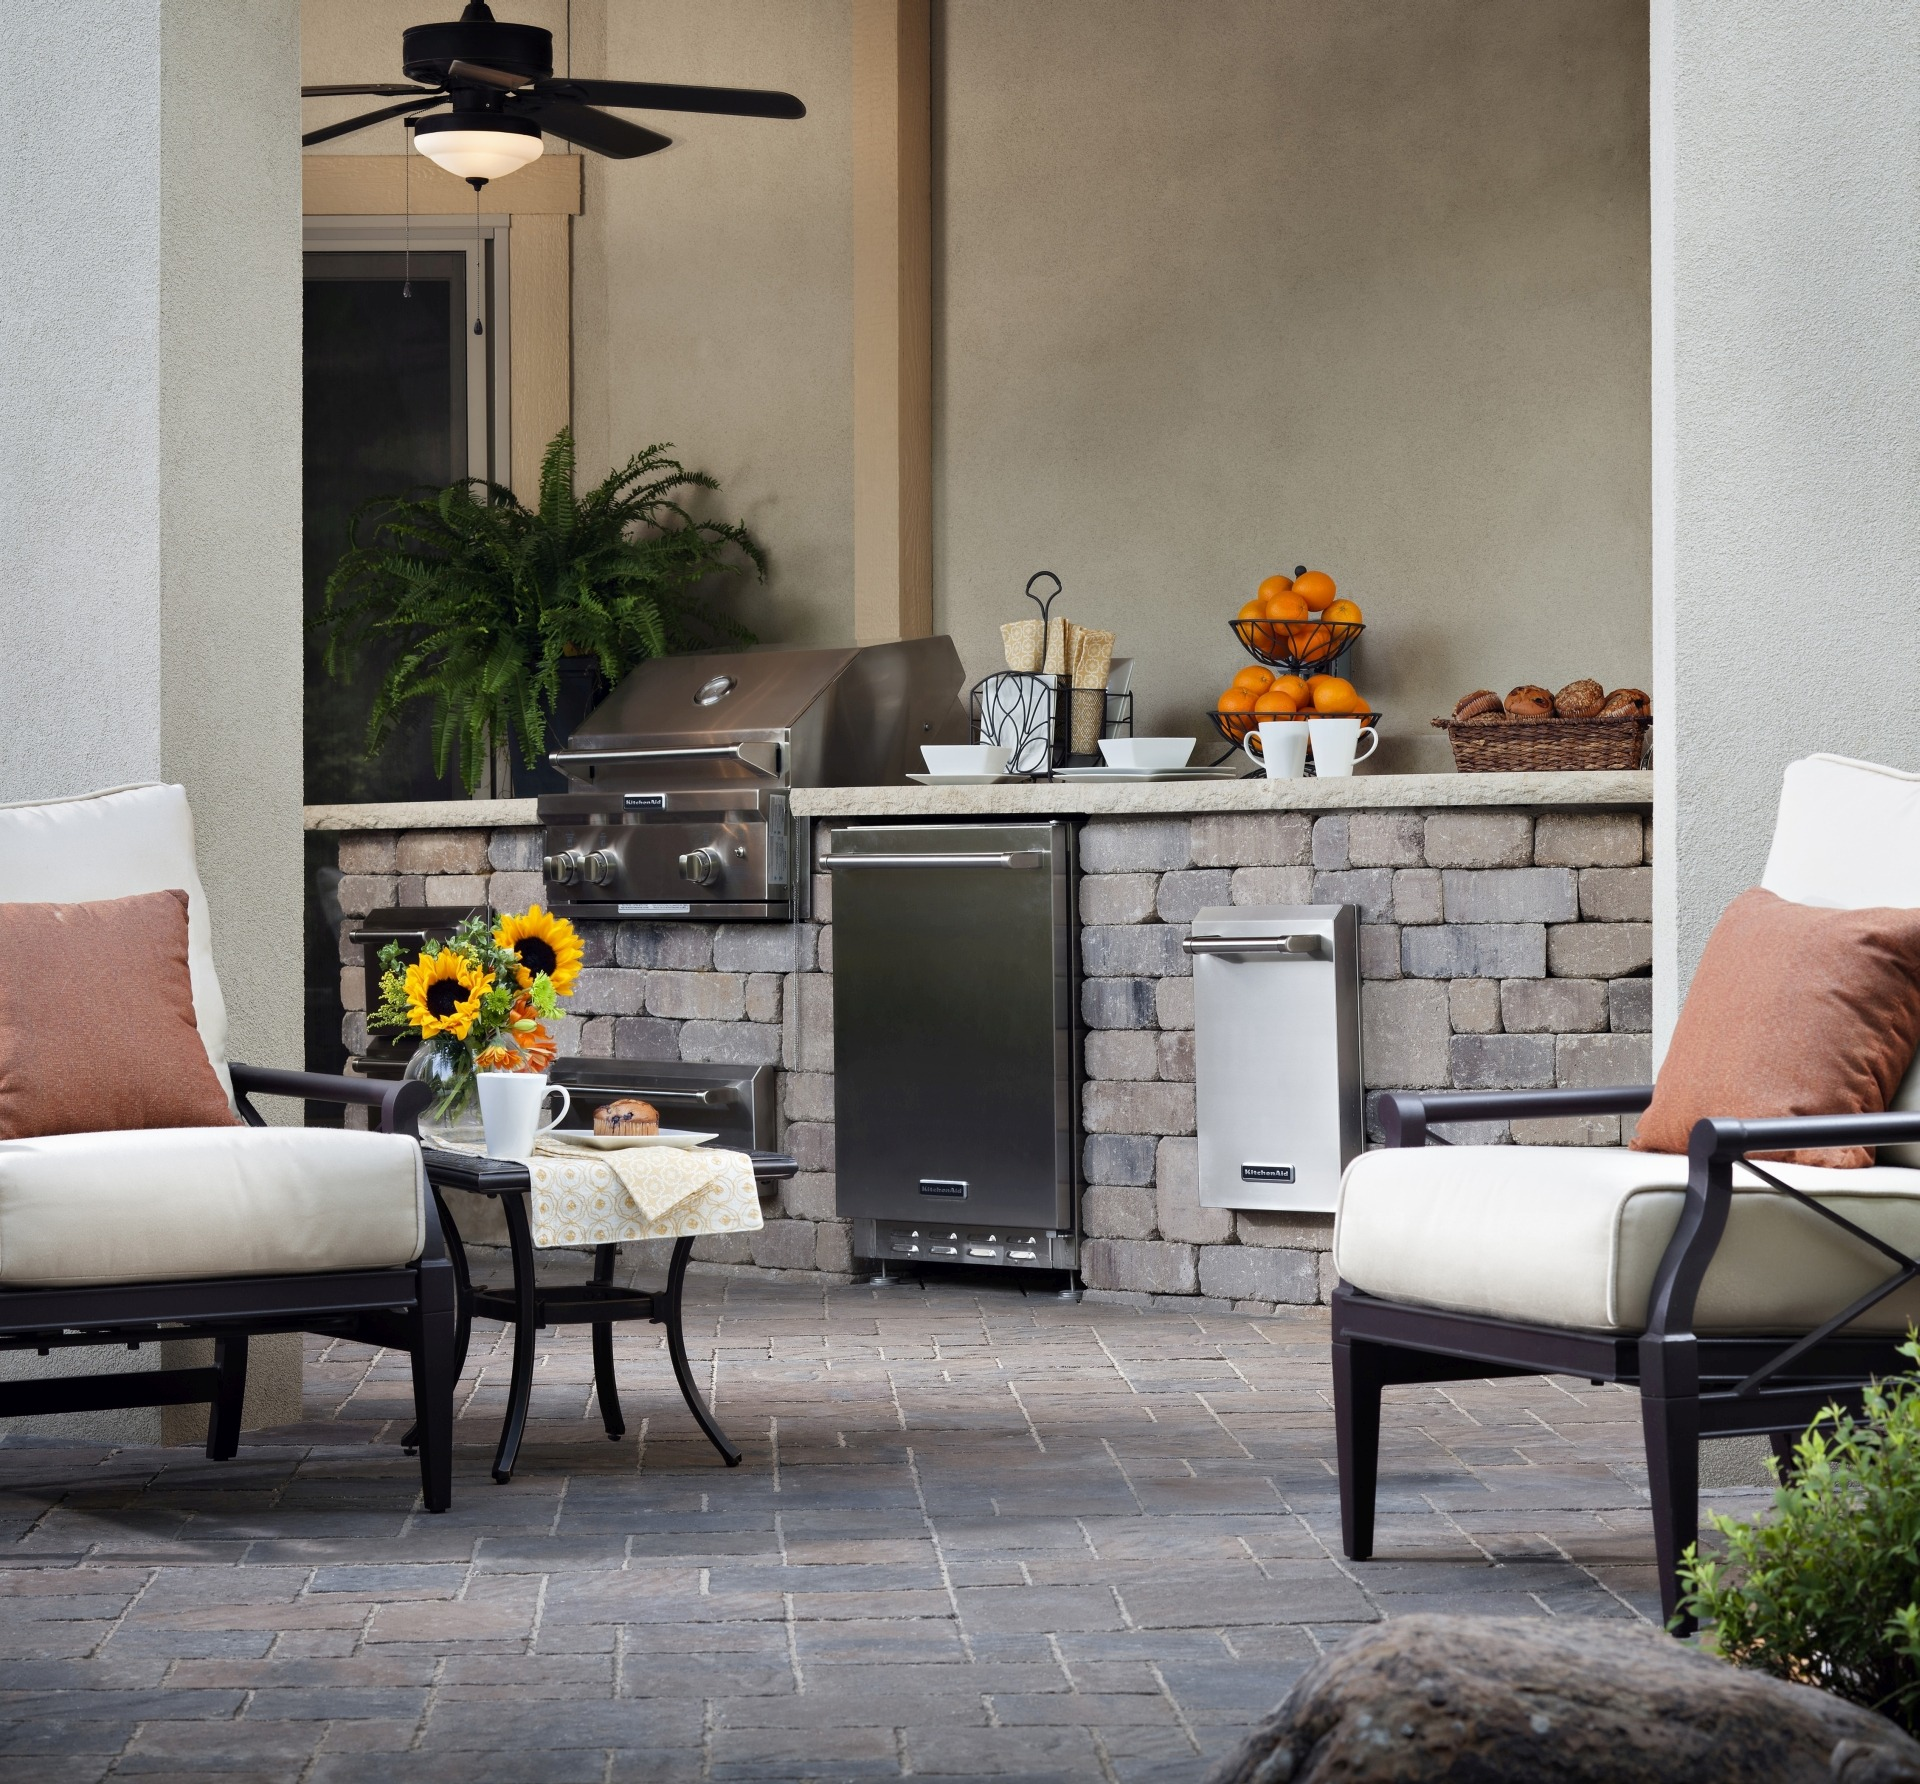 Paving Stone Outdoor Kitchen